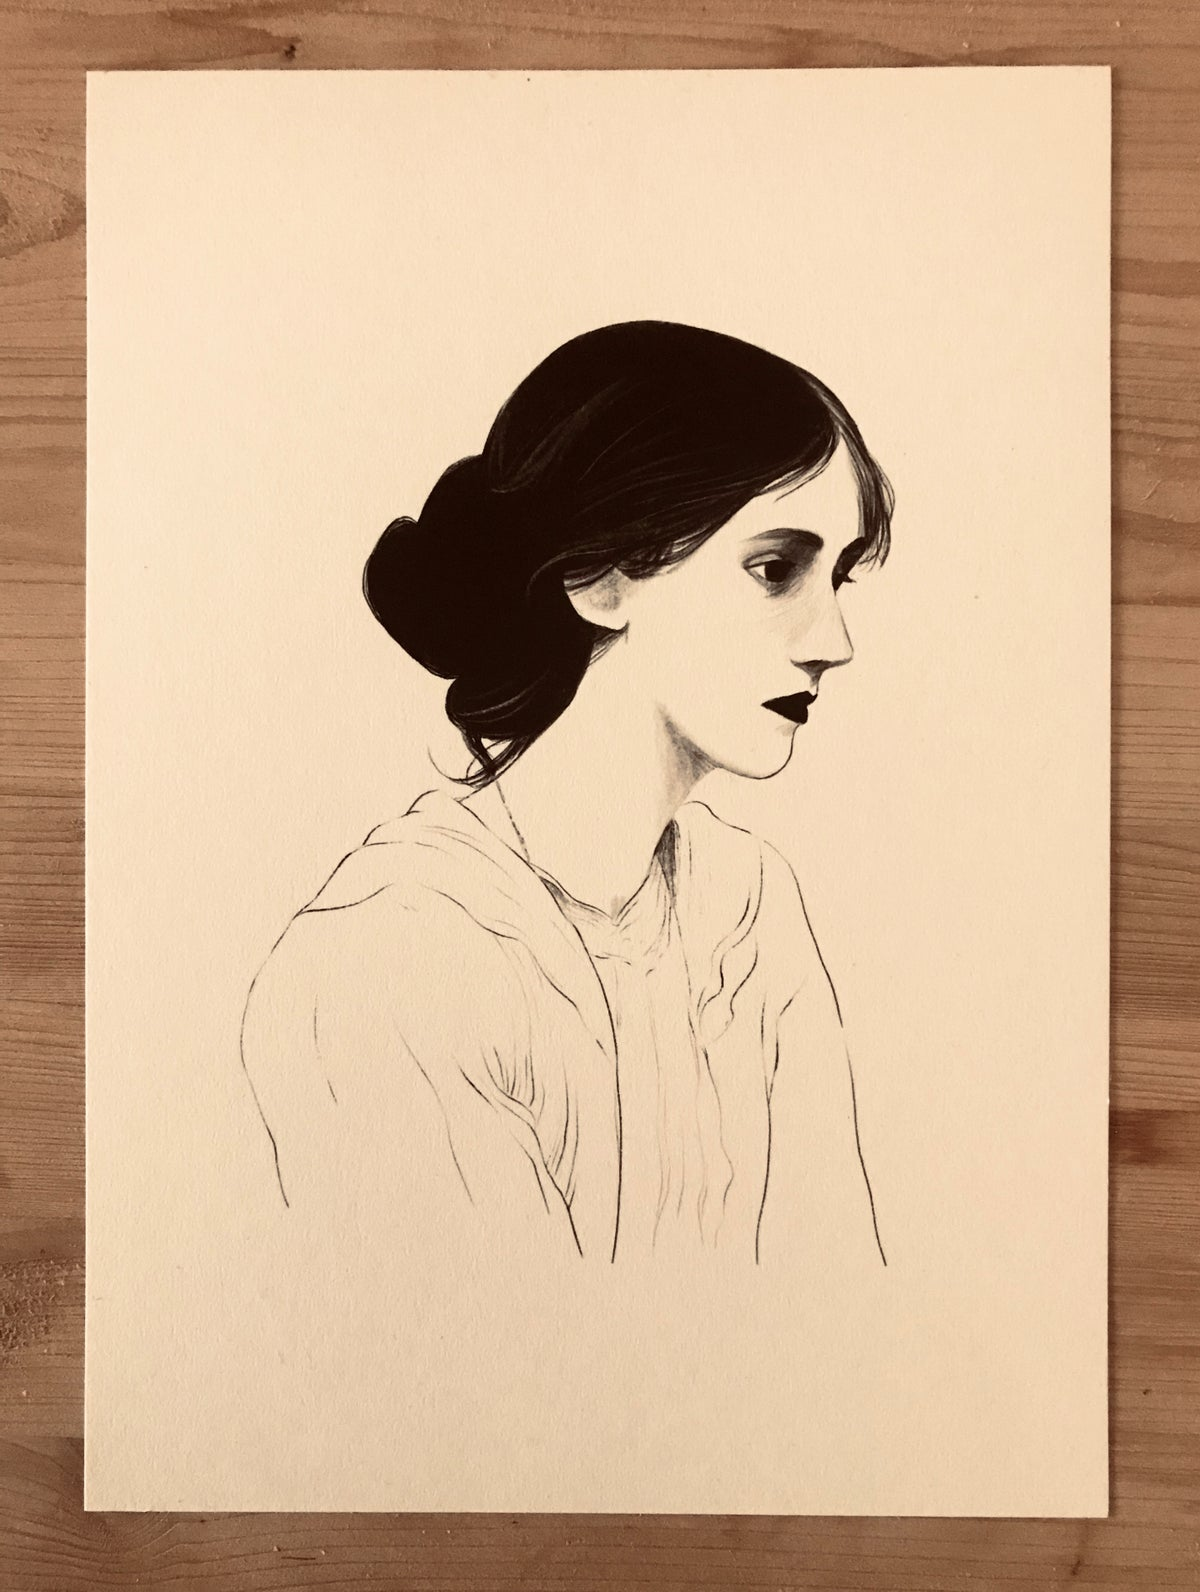 Image of Virginia Woolf